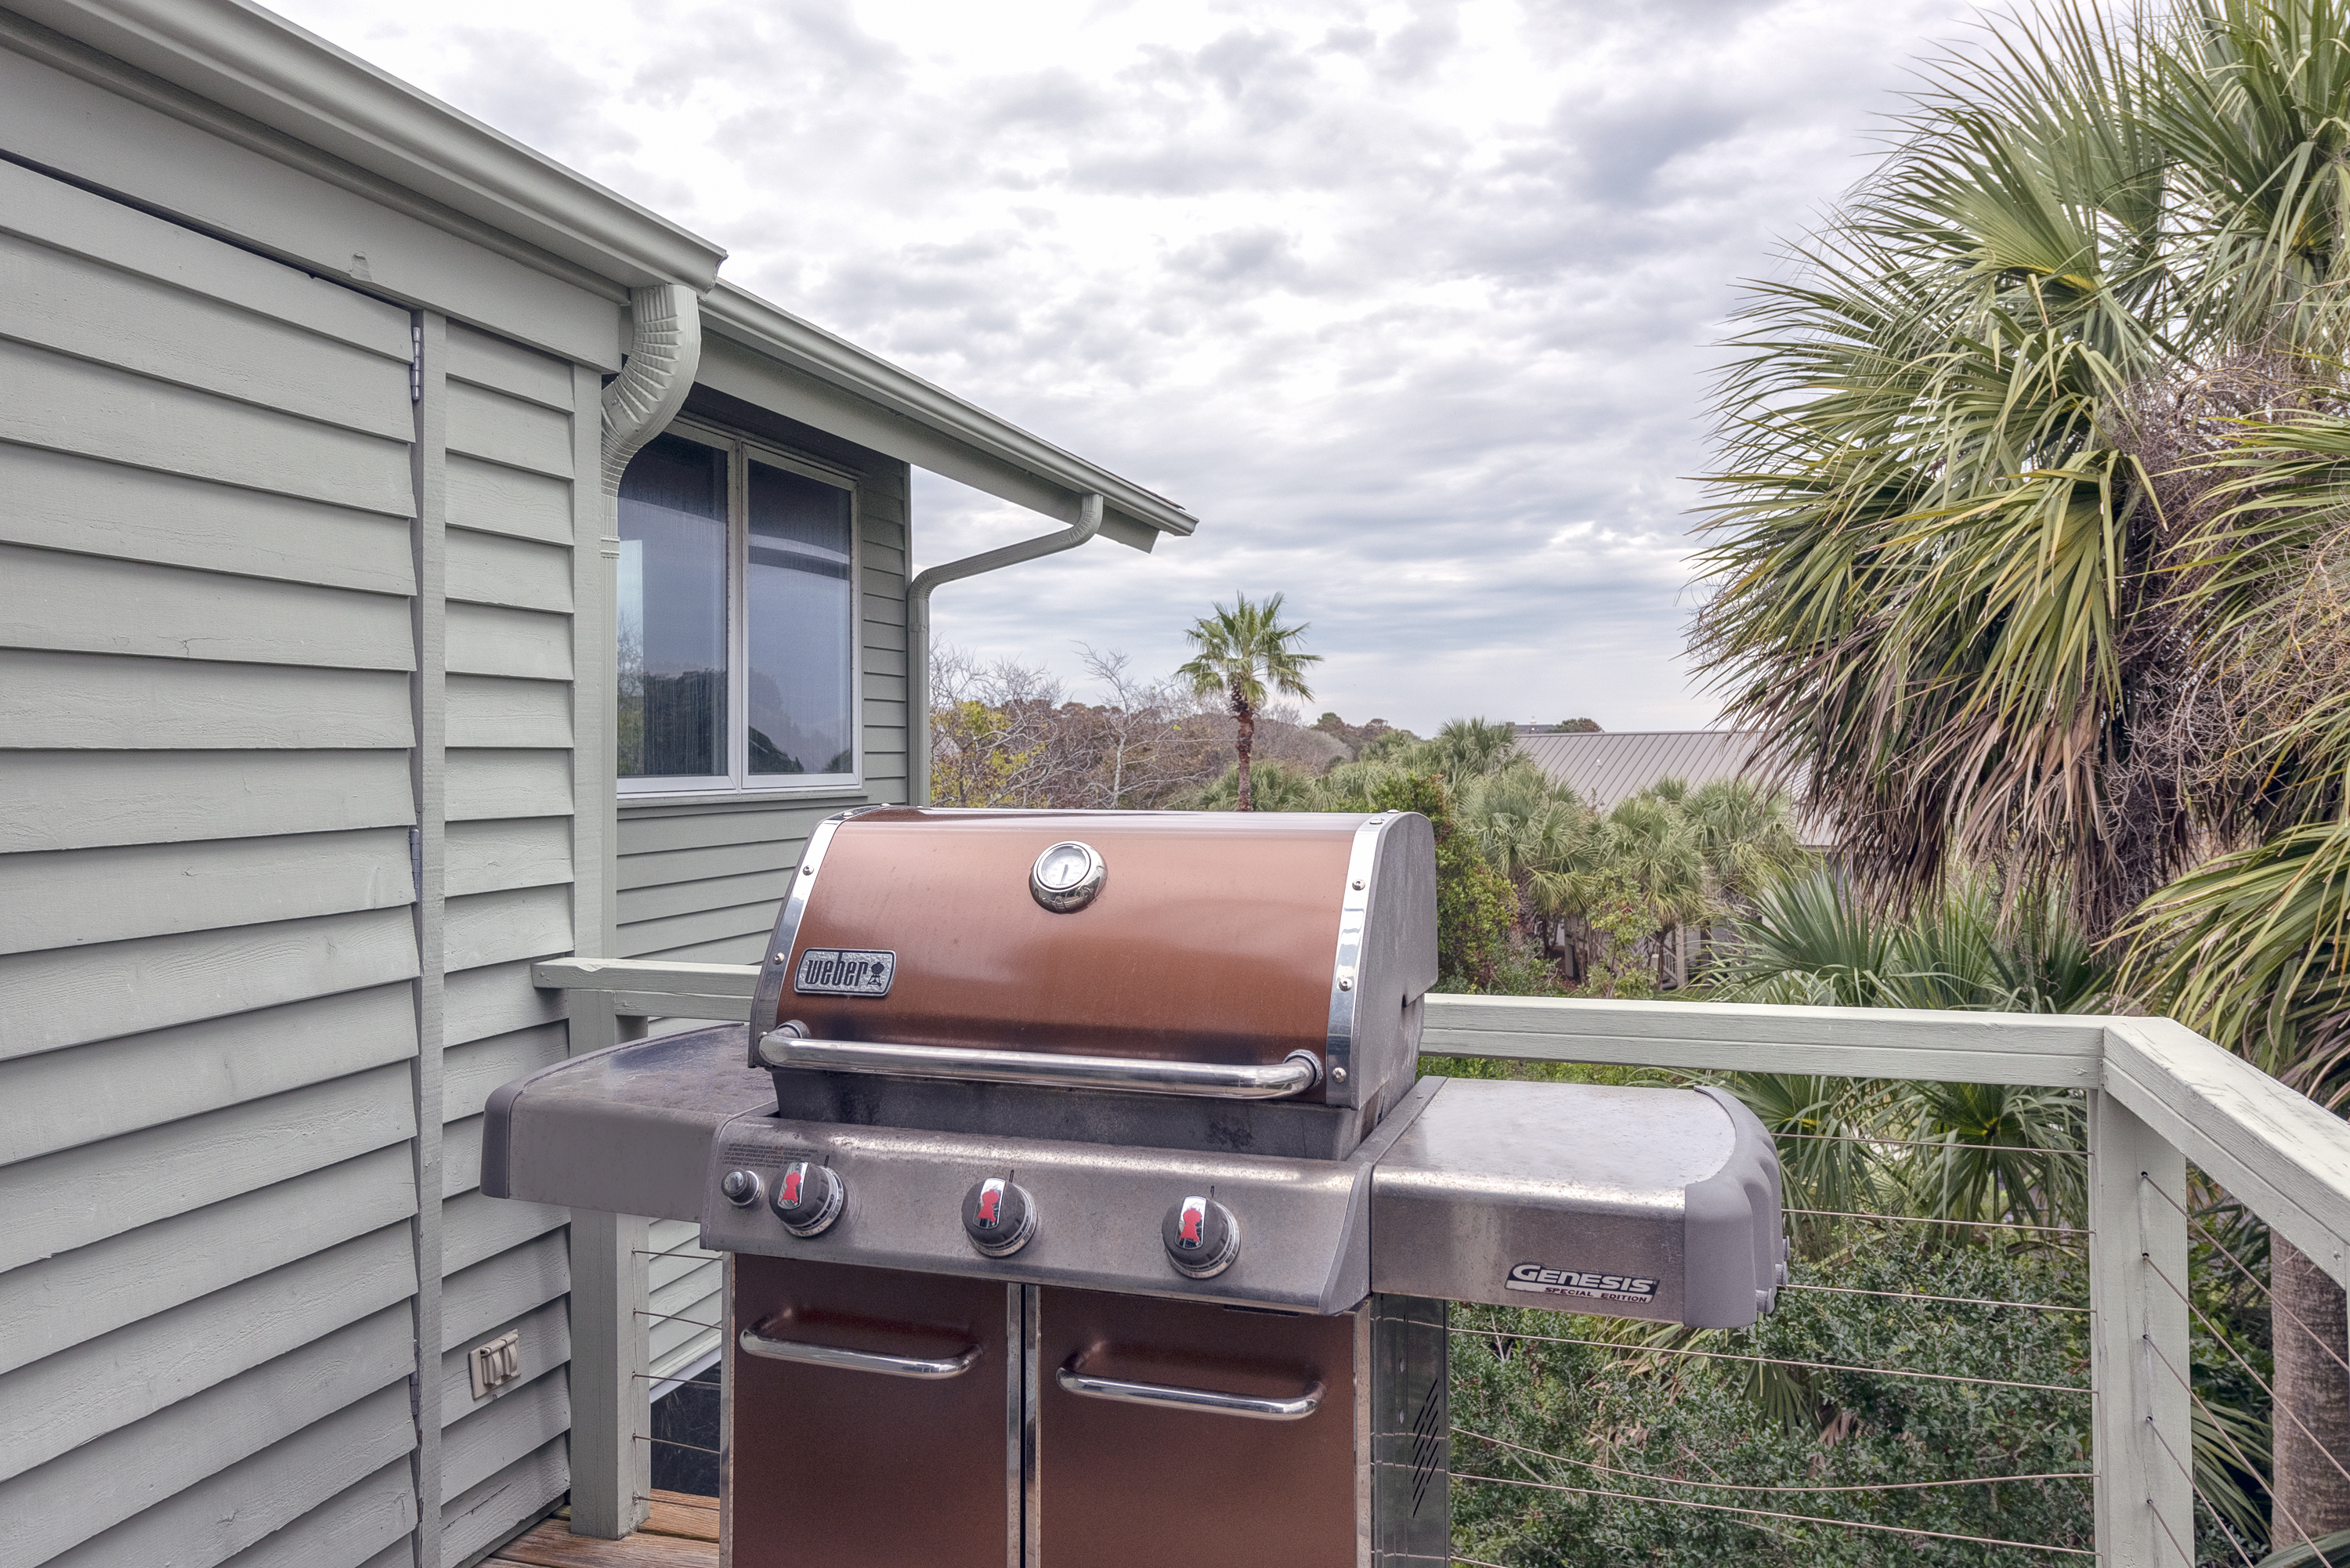 Weber propane grill outside of screened porch